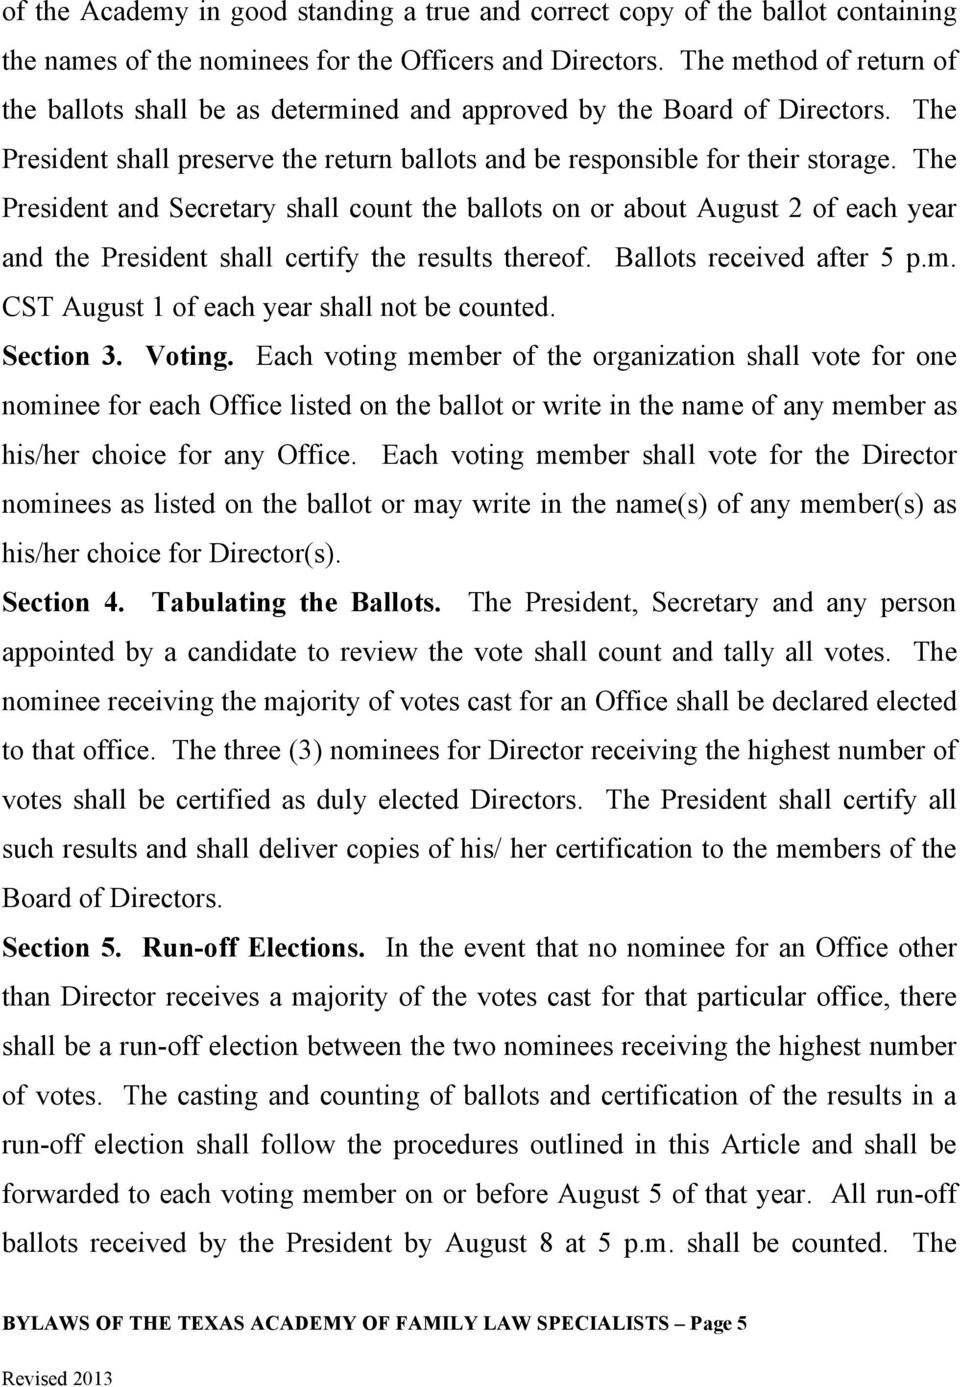 The President and Secretary shall count the ballots on or about August 2 of each year and the President shall certify the results thereof. Ballots received after 5 p.m.